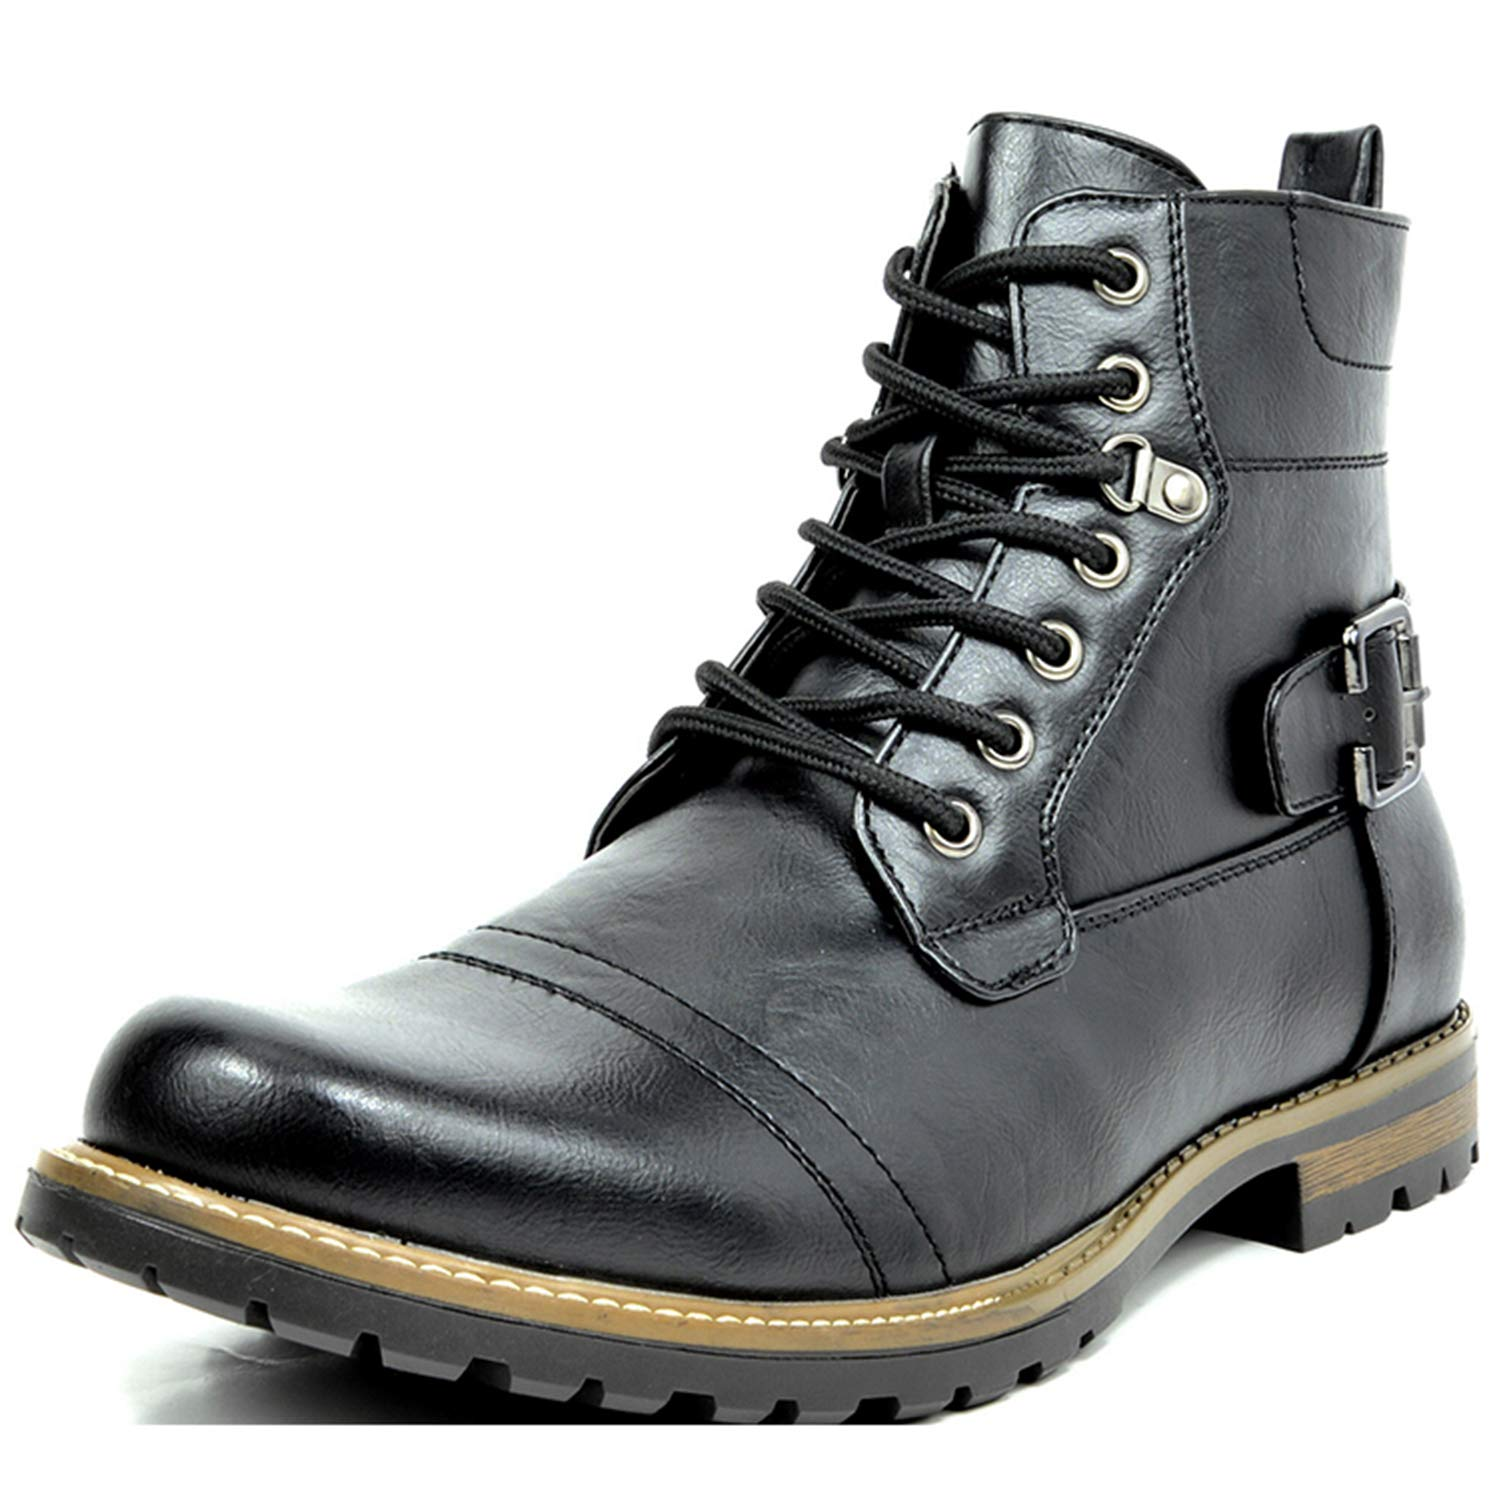 Steampunk Boots & Shoes, Heels & Flats Bruno Marc Mens Military Motorcycle Combat Boots $39.99 AT vintagedancer.com